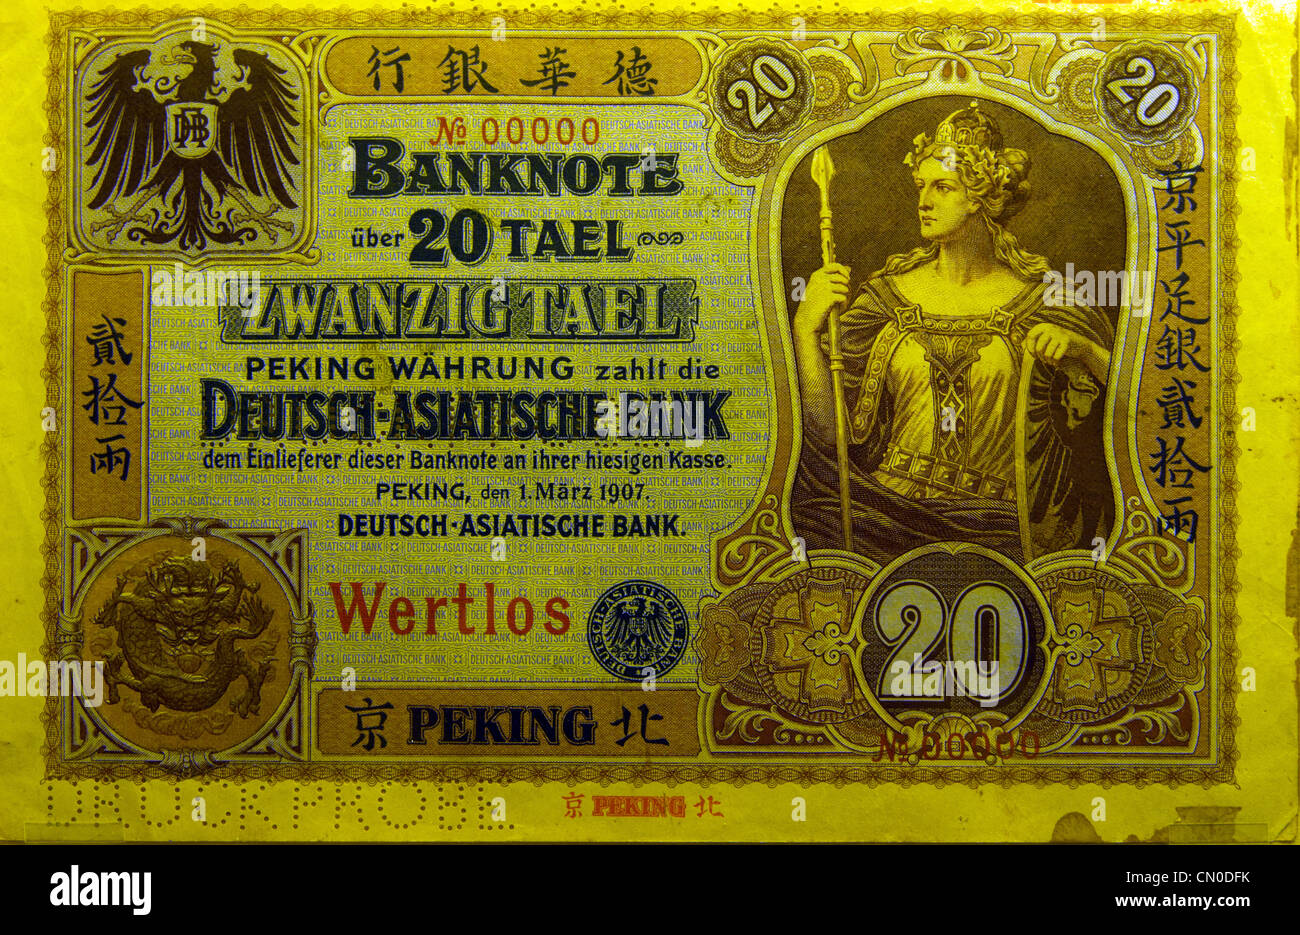 Chinese 20 tael bank note issued by the Deutsch Asiatische Bank (1907) - Stock Image